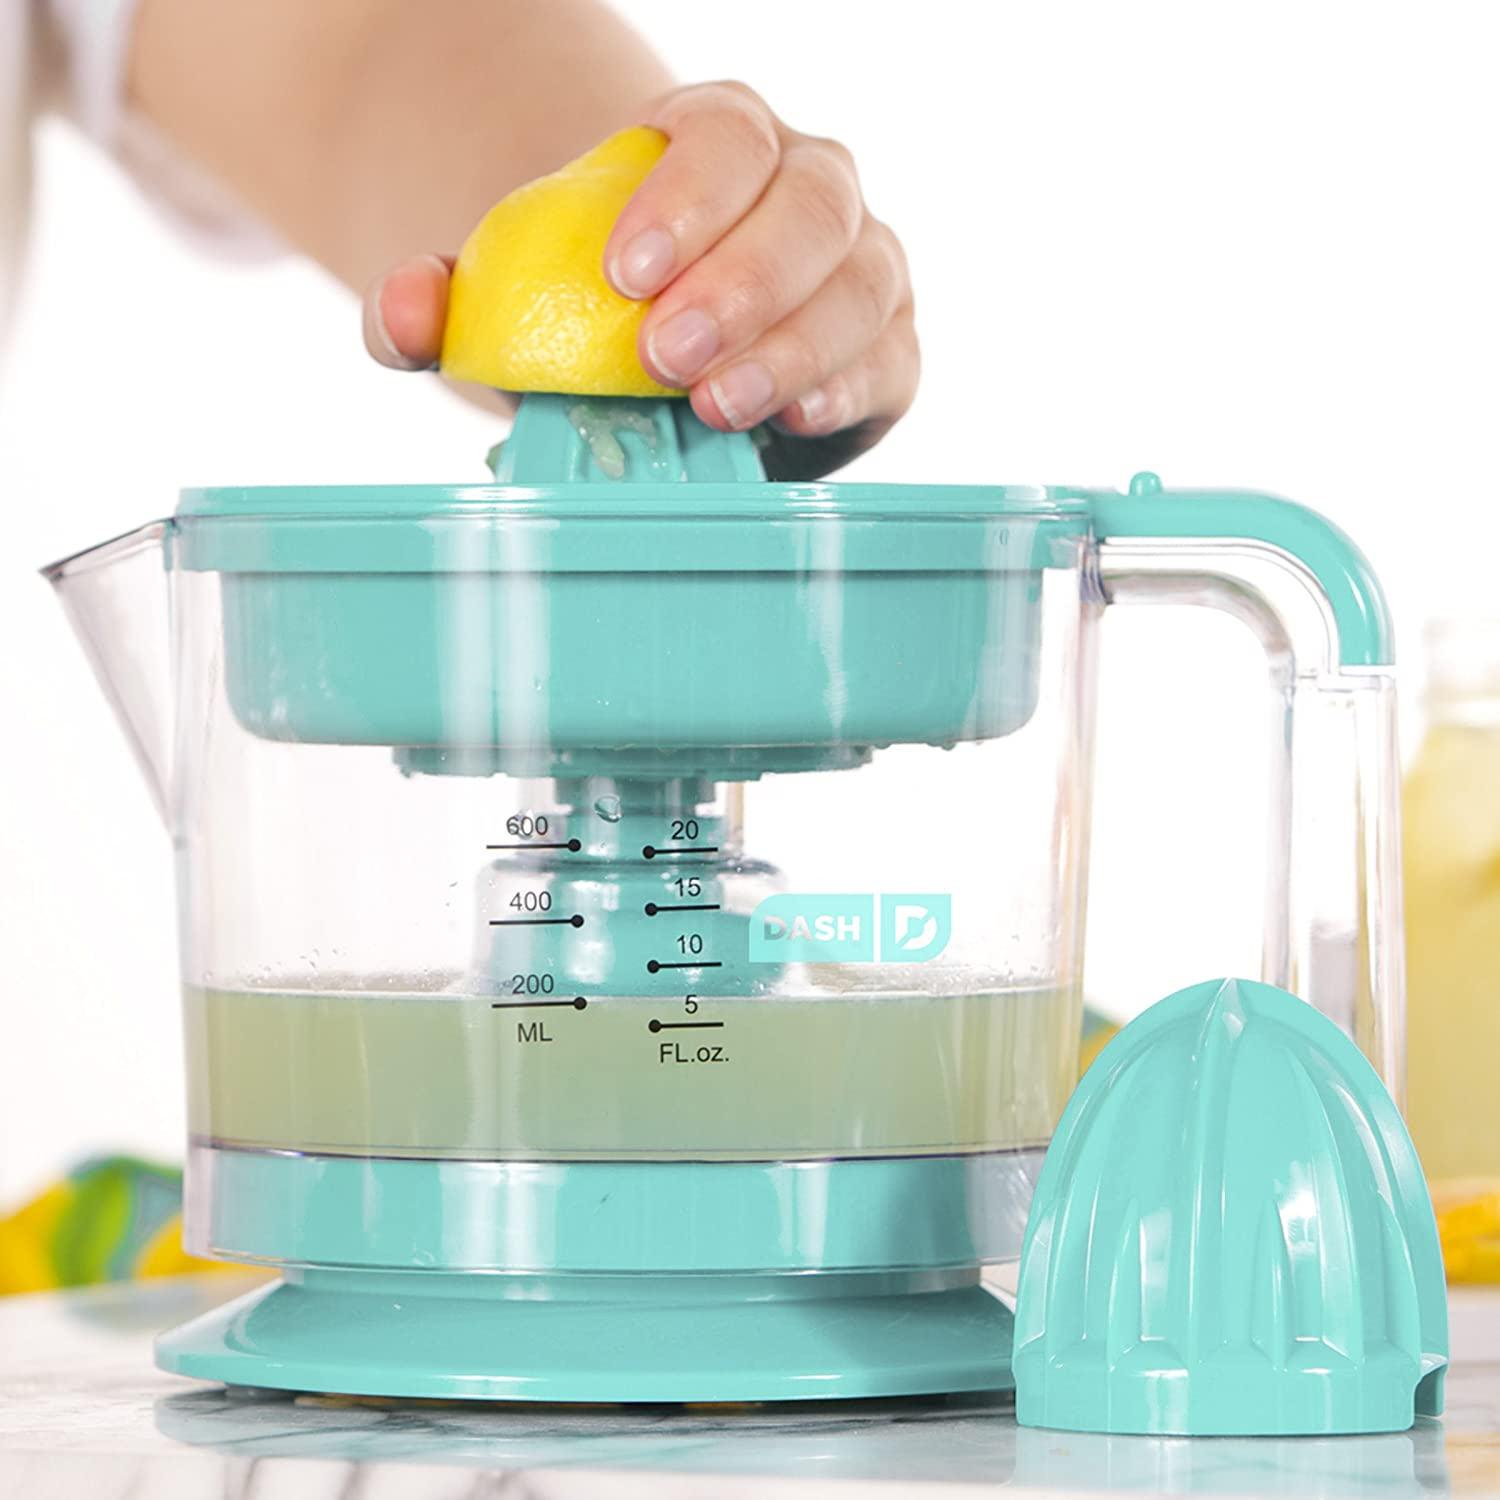 Amazon.com: Dash Citrus Juicer Extractor: Compact Juicer for Healthy ...